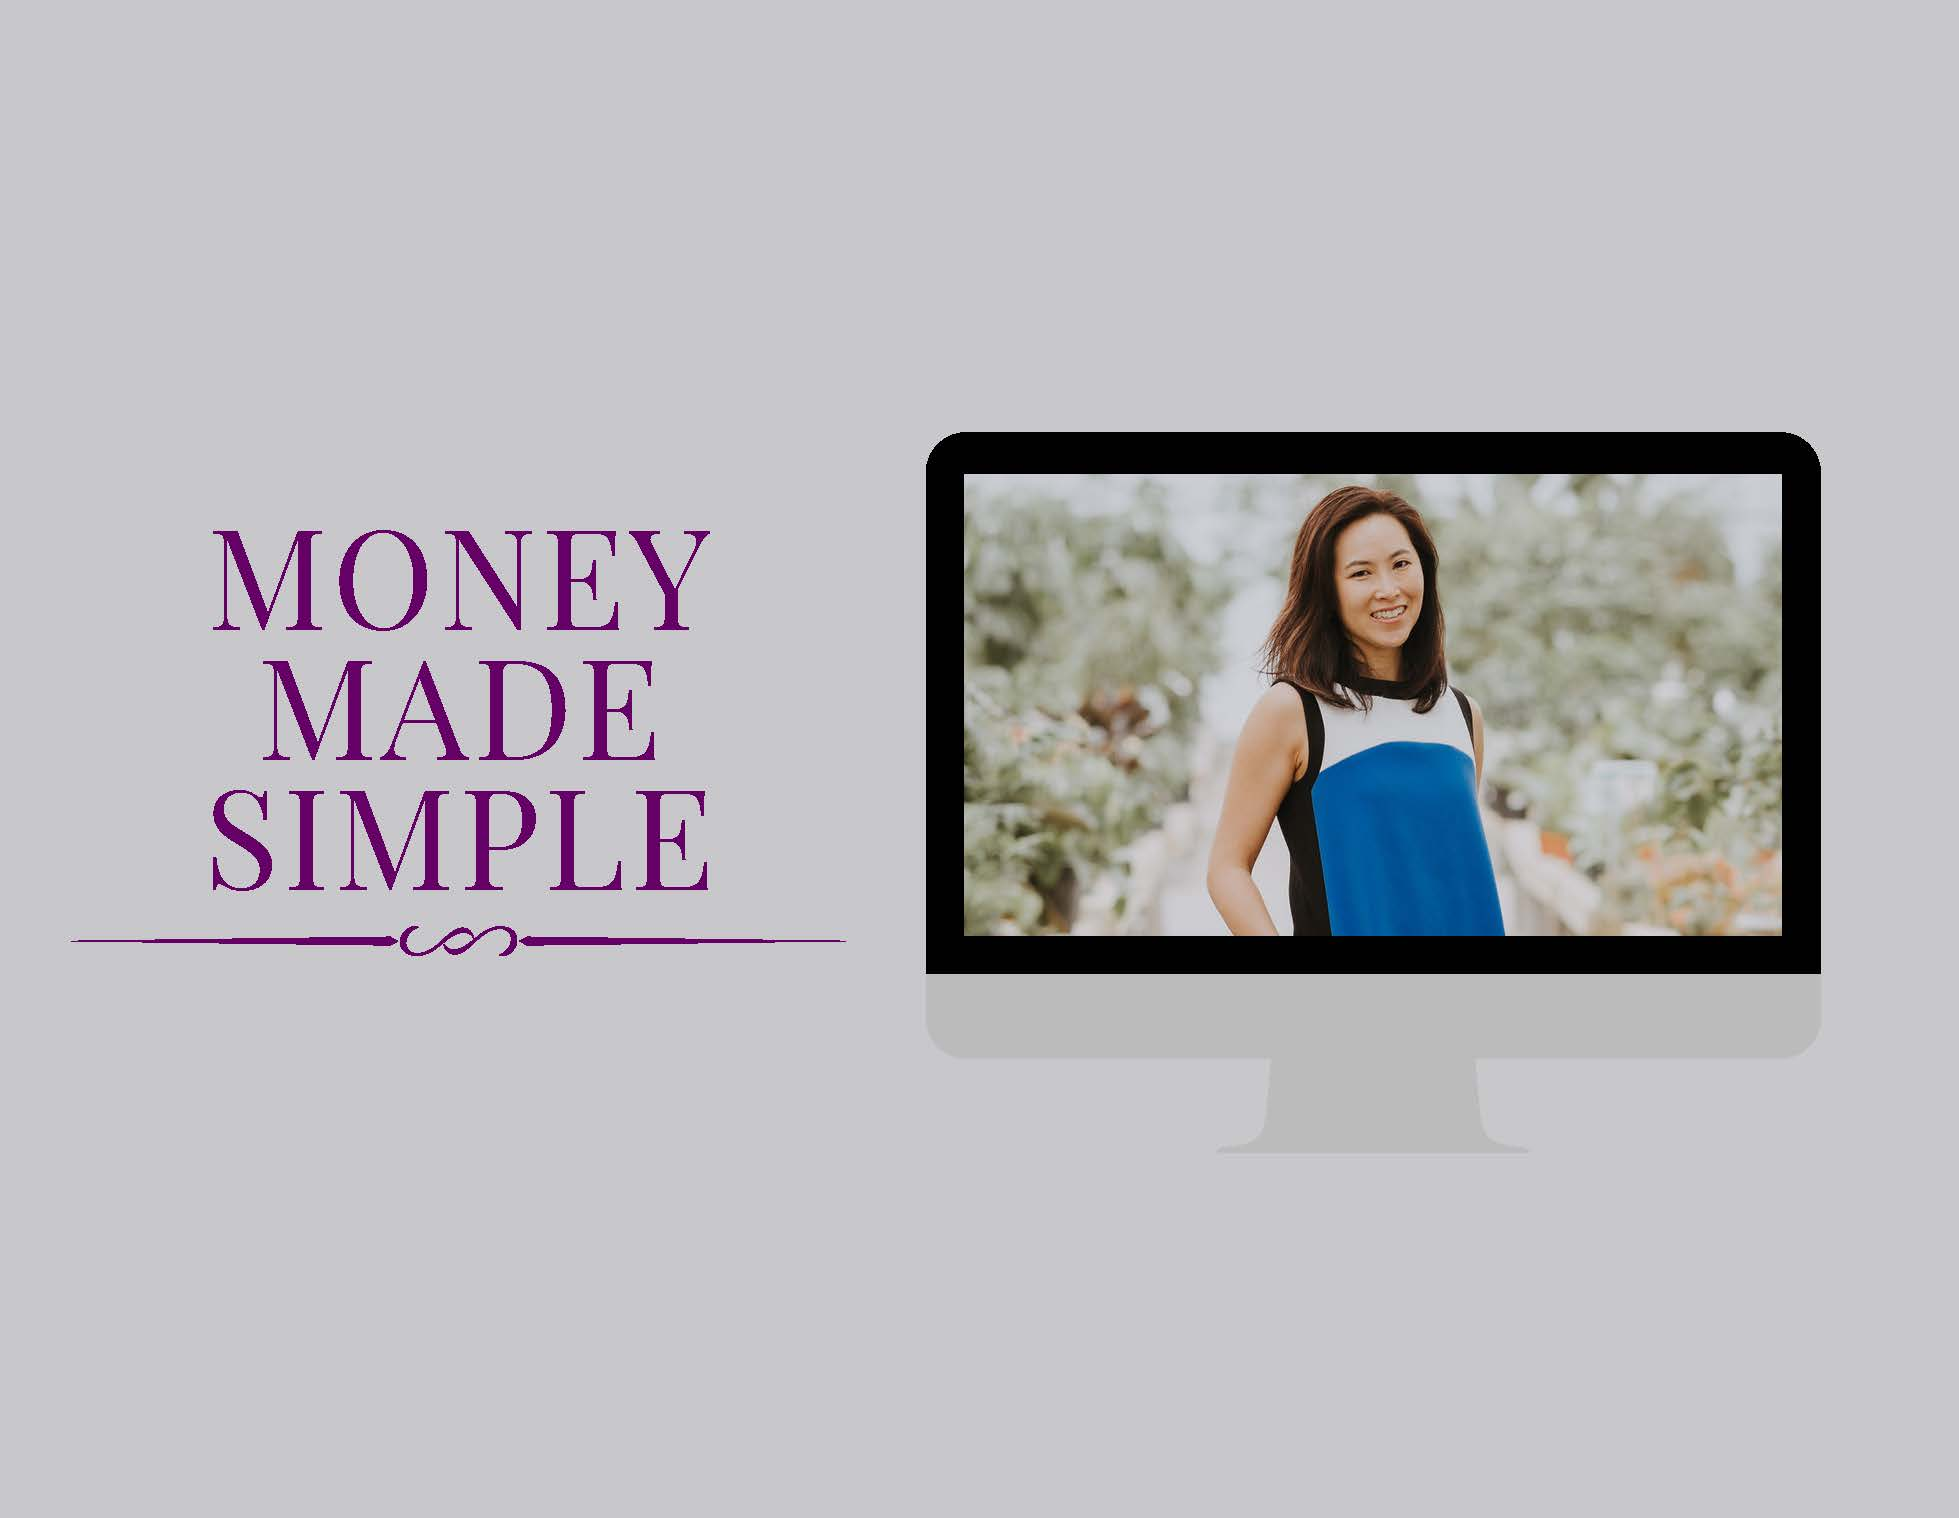 MONEY MADE SIMPLE